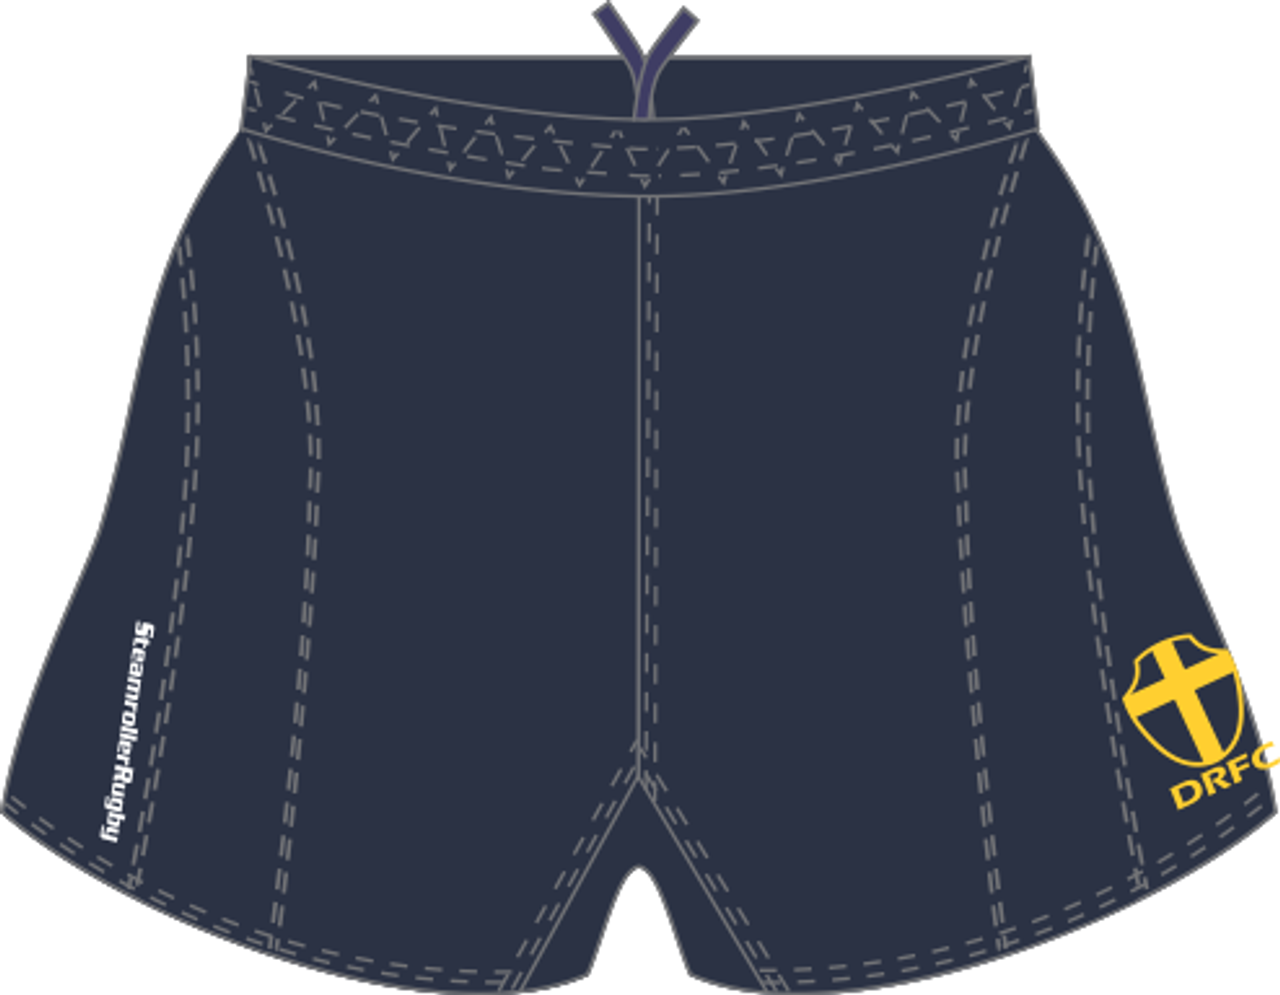 Downingtown SRS Performance Rugby Shorts, Navy